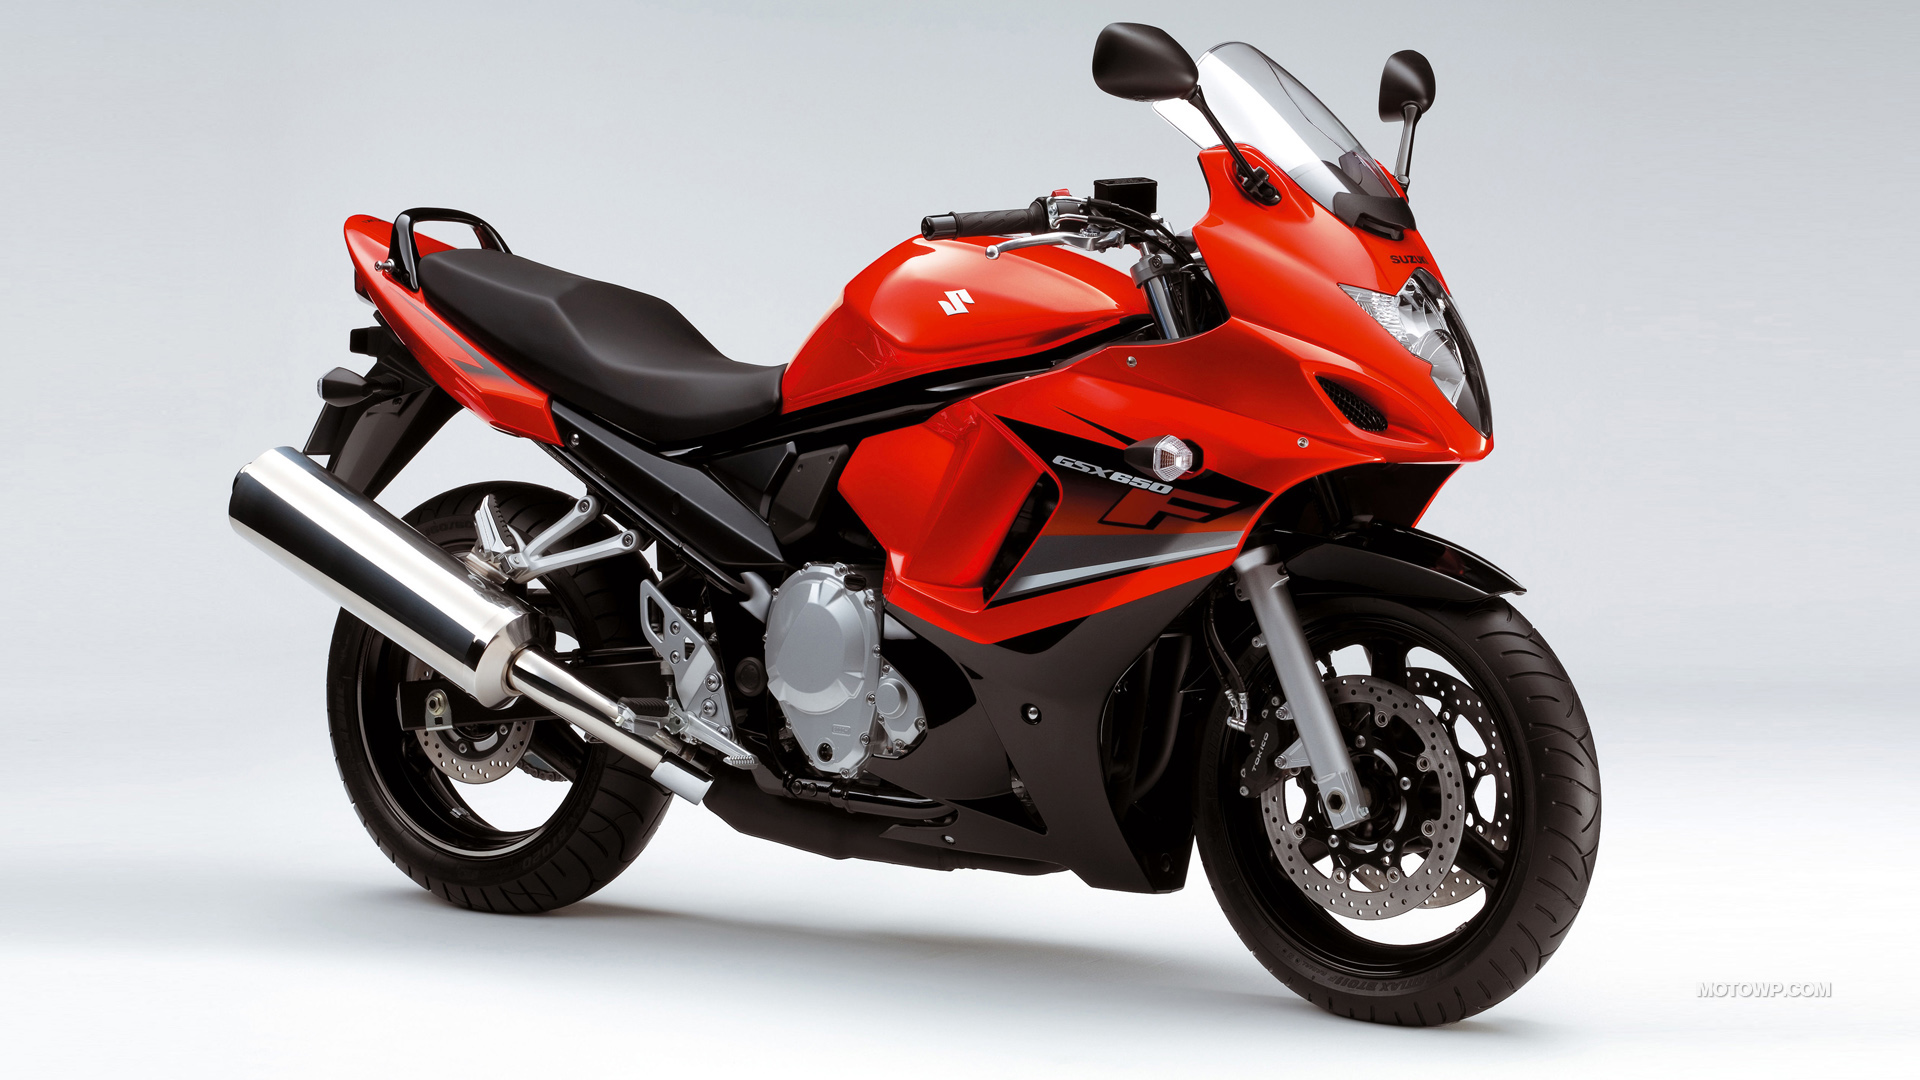 2009 suzuki gsx 650 f pics specs and information. Black Bedroom Furniture Sets. Home Design Ideas